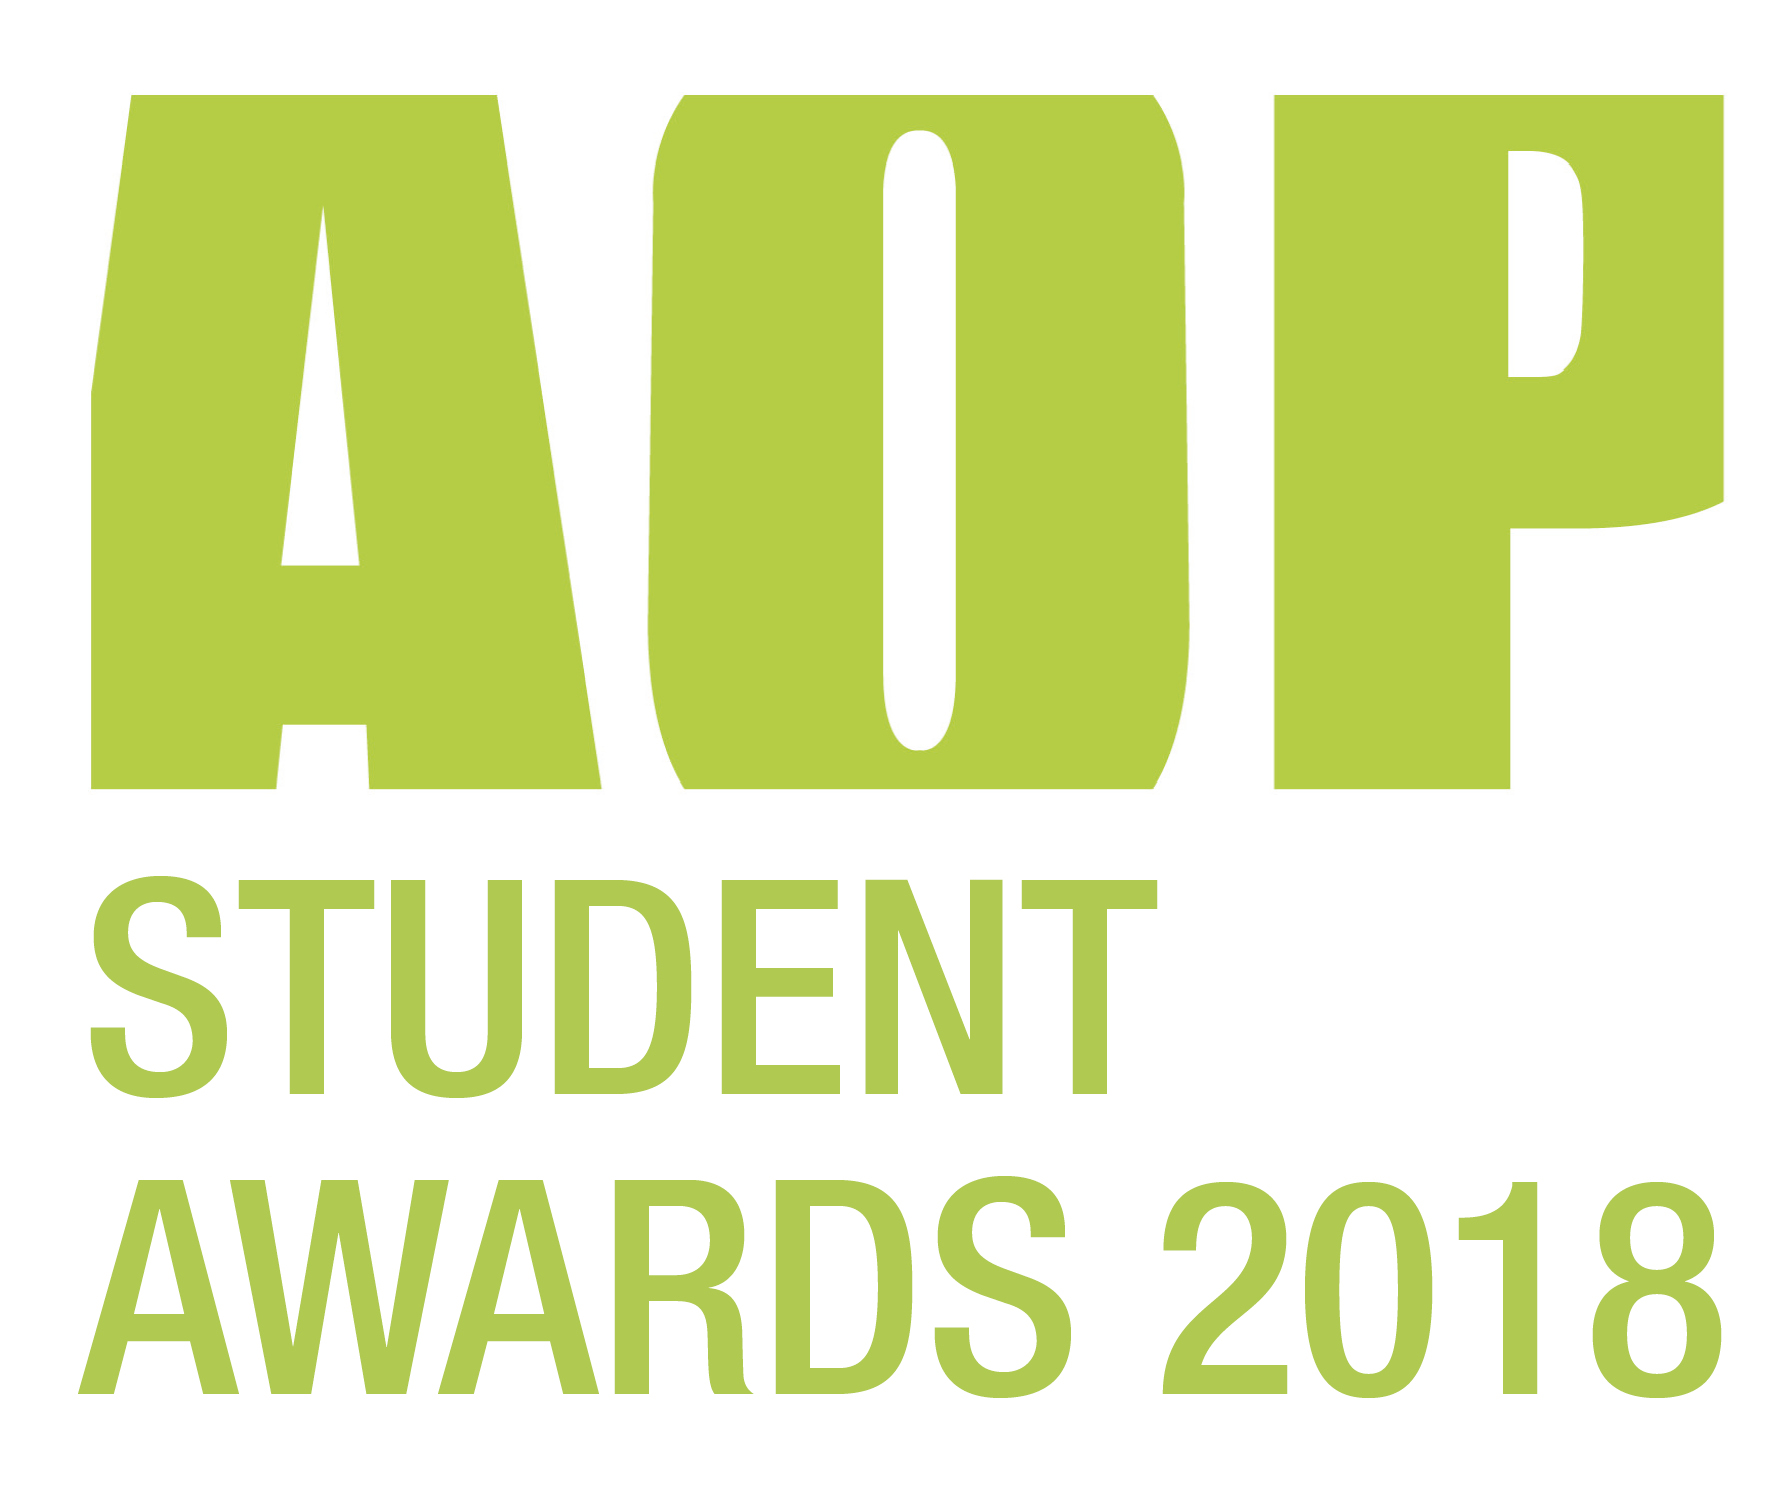 Student Awards Logo 2018